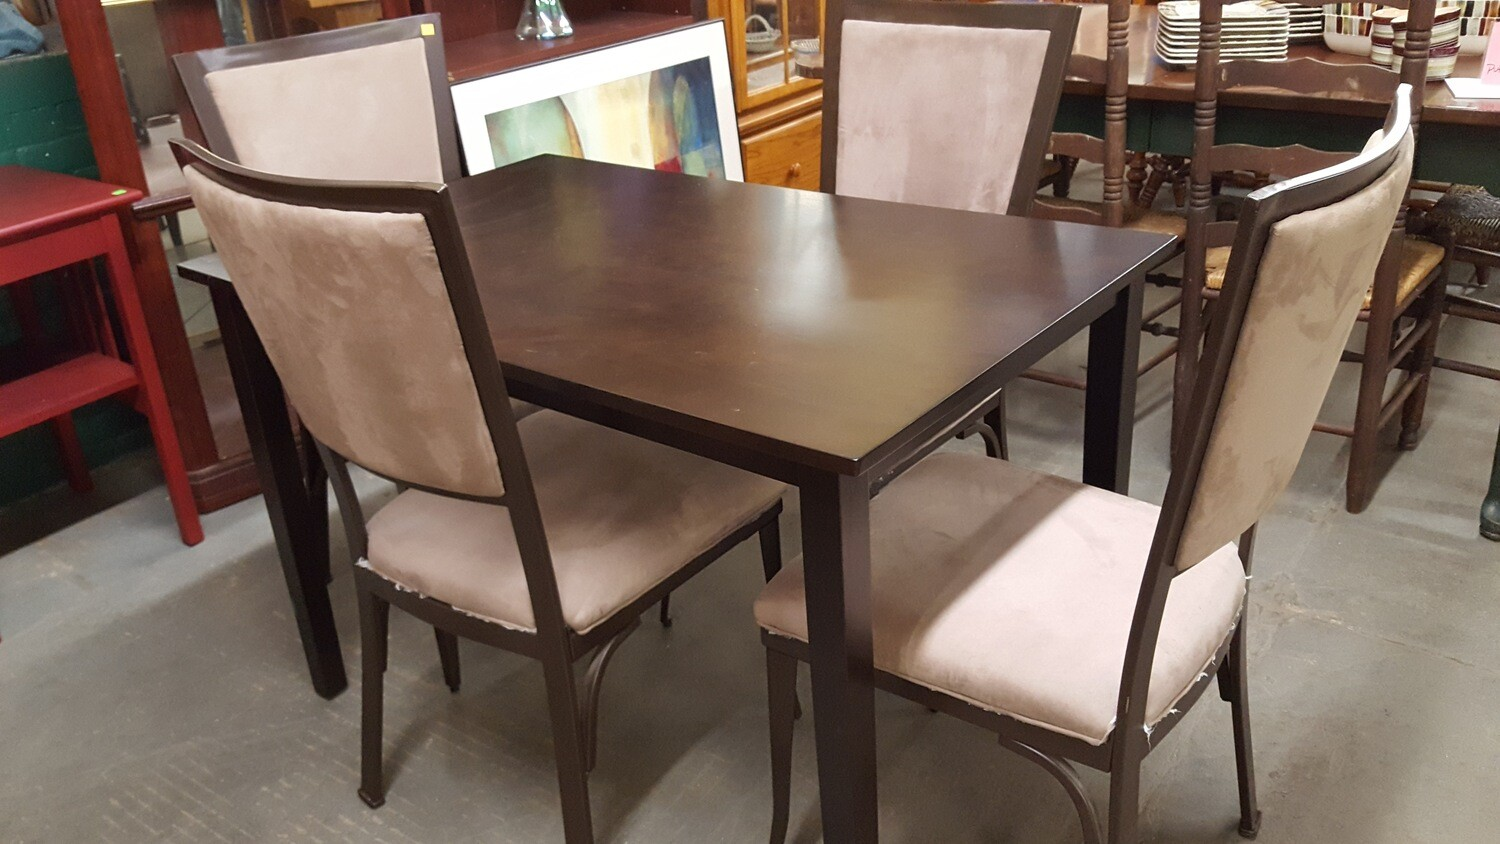 Modern Dining Table, 4 chairs